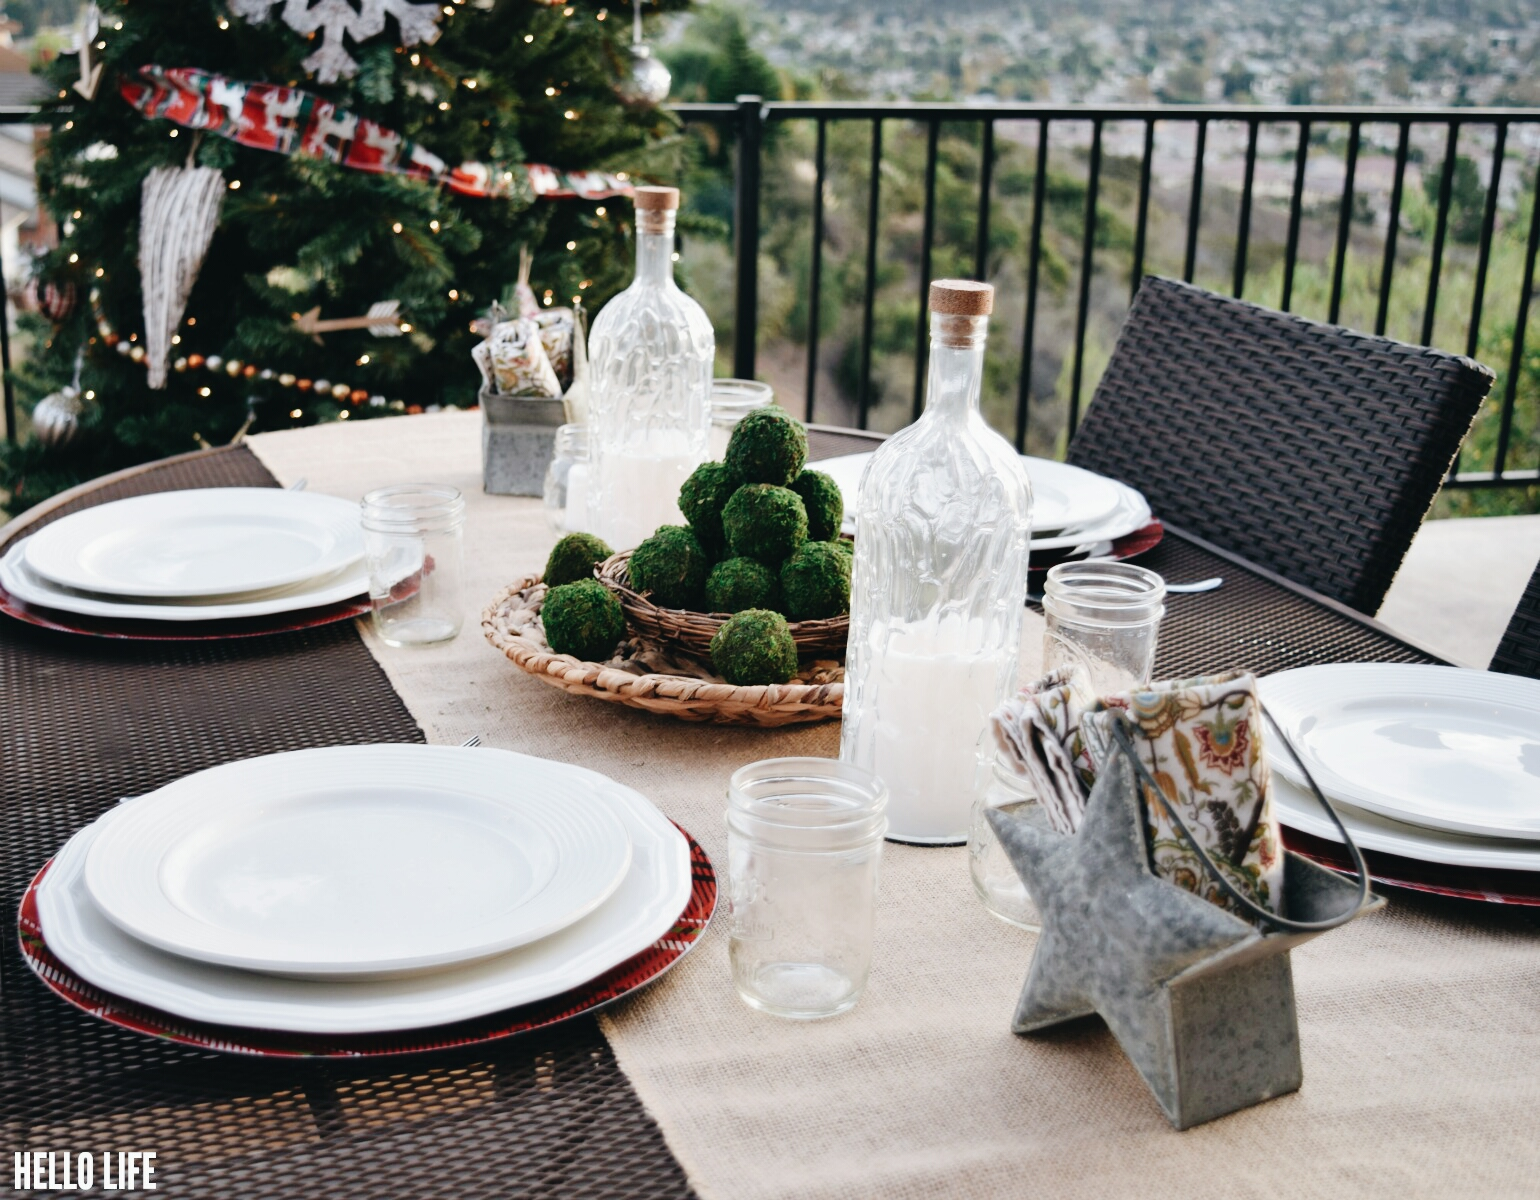 Casual Holiday Dinner Outdoors! #michaelsmakers #madebymichales #makeitwithmichaels